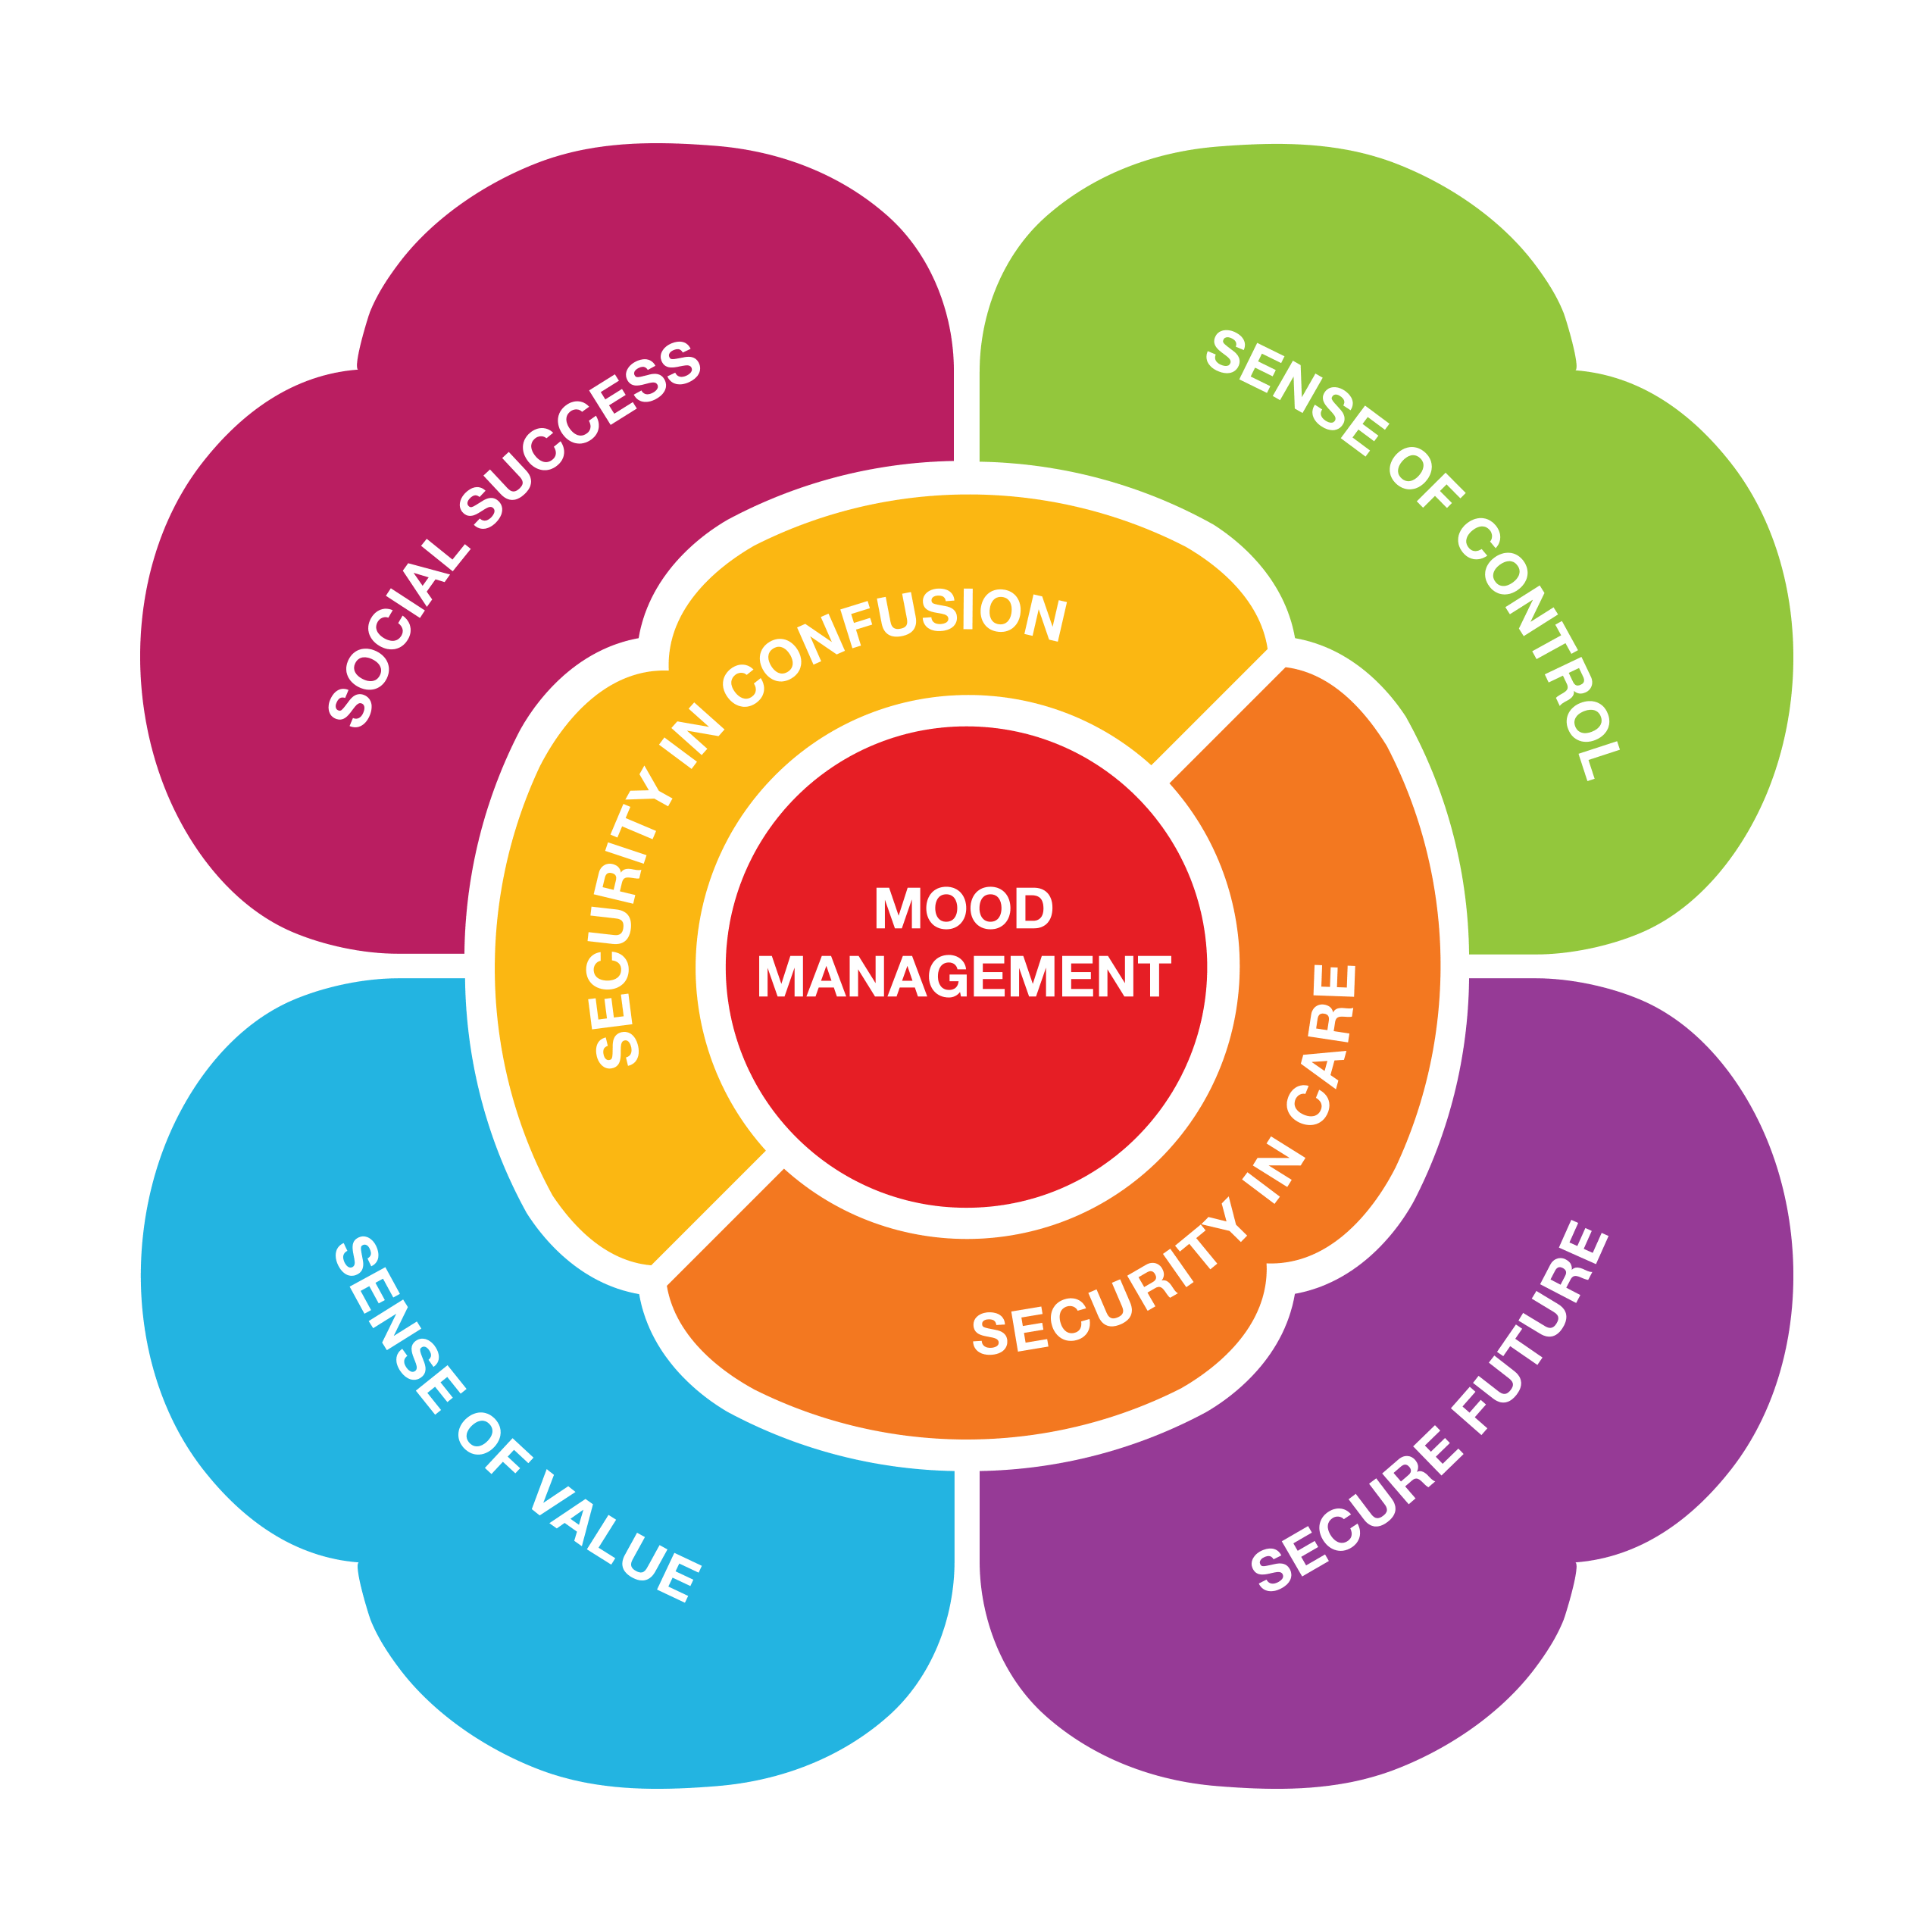 the DAWN Method includes 7 Tools: Mood Management is most important; Second most important are security in confusion and security in care; Then the 4 components of well-being are social success, sense of control, sense of value, and secure future